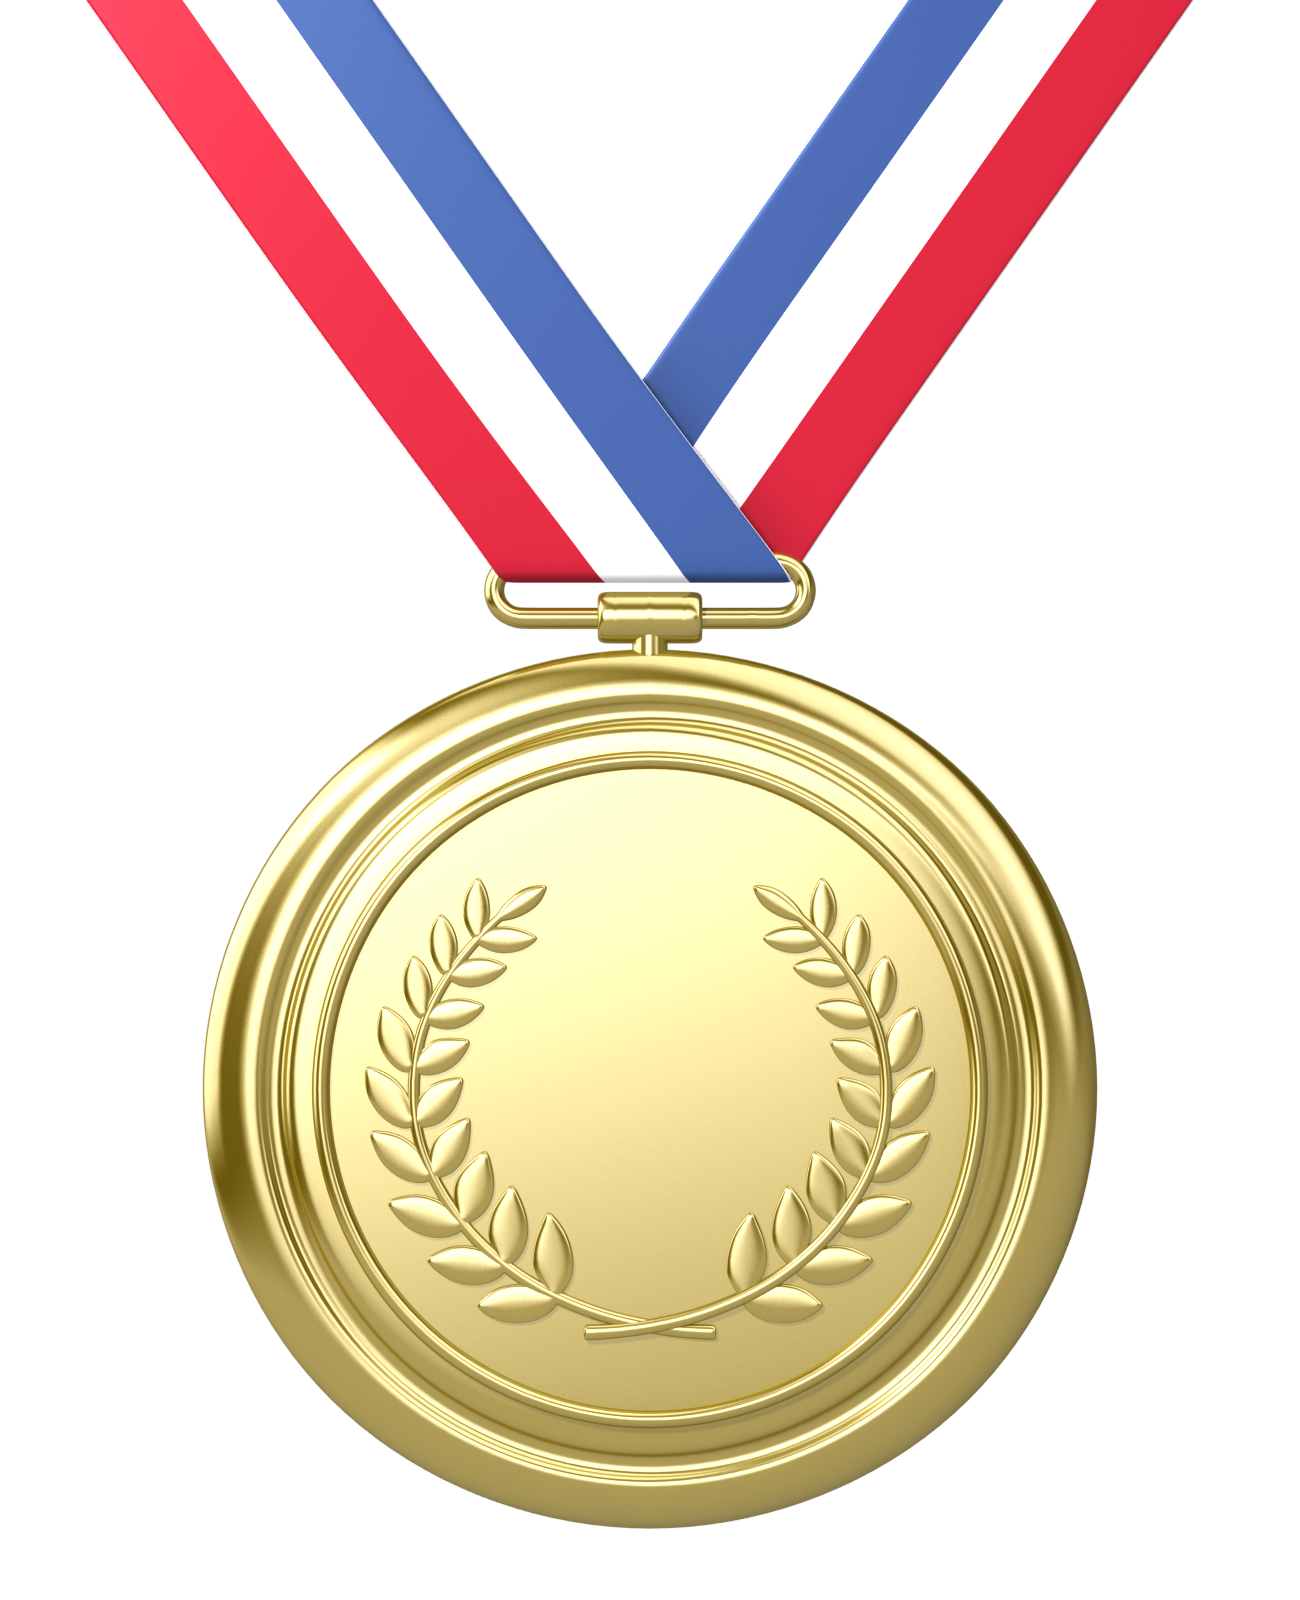 7 Personal Gold Medal Achievements | bee | Olympic medals, Clip art ... black and white download